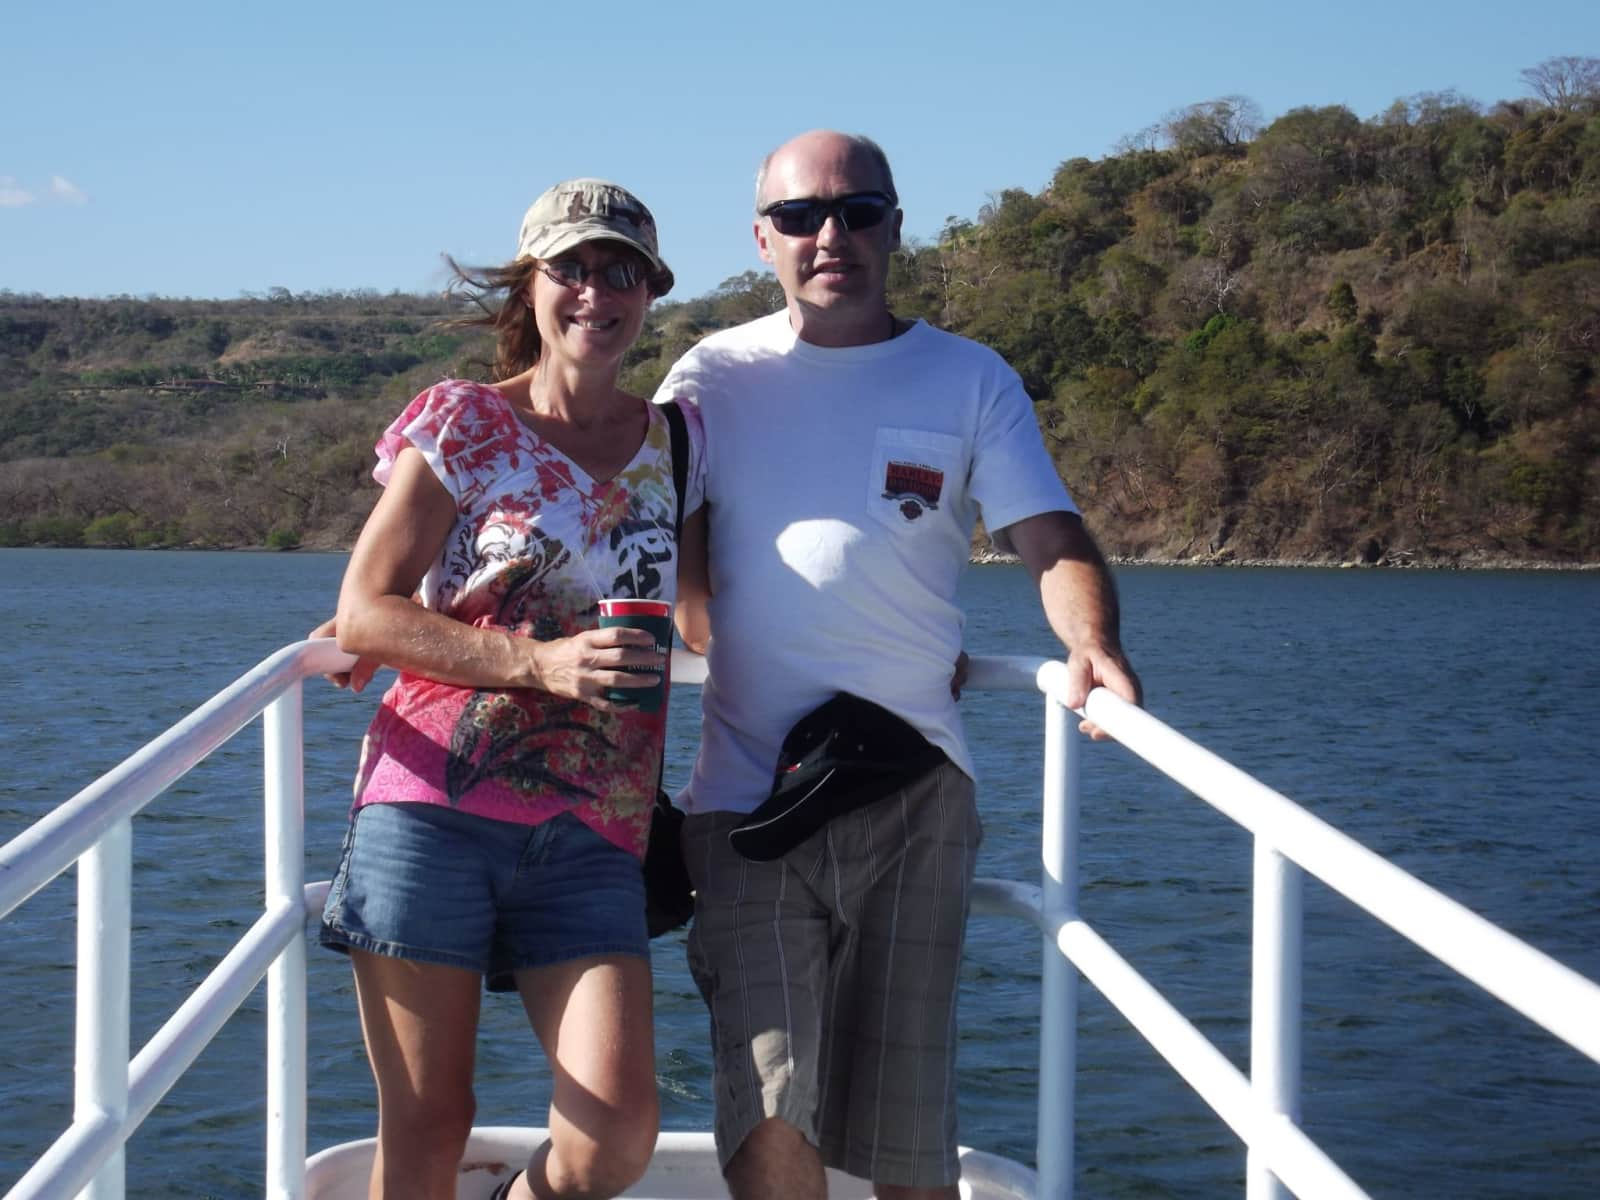 Cathy & Patrick from Coco, Sardinal, Costa Rica